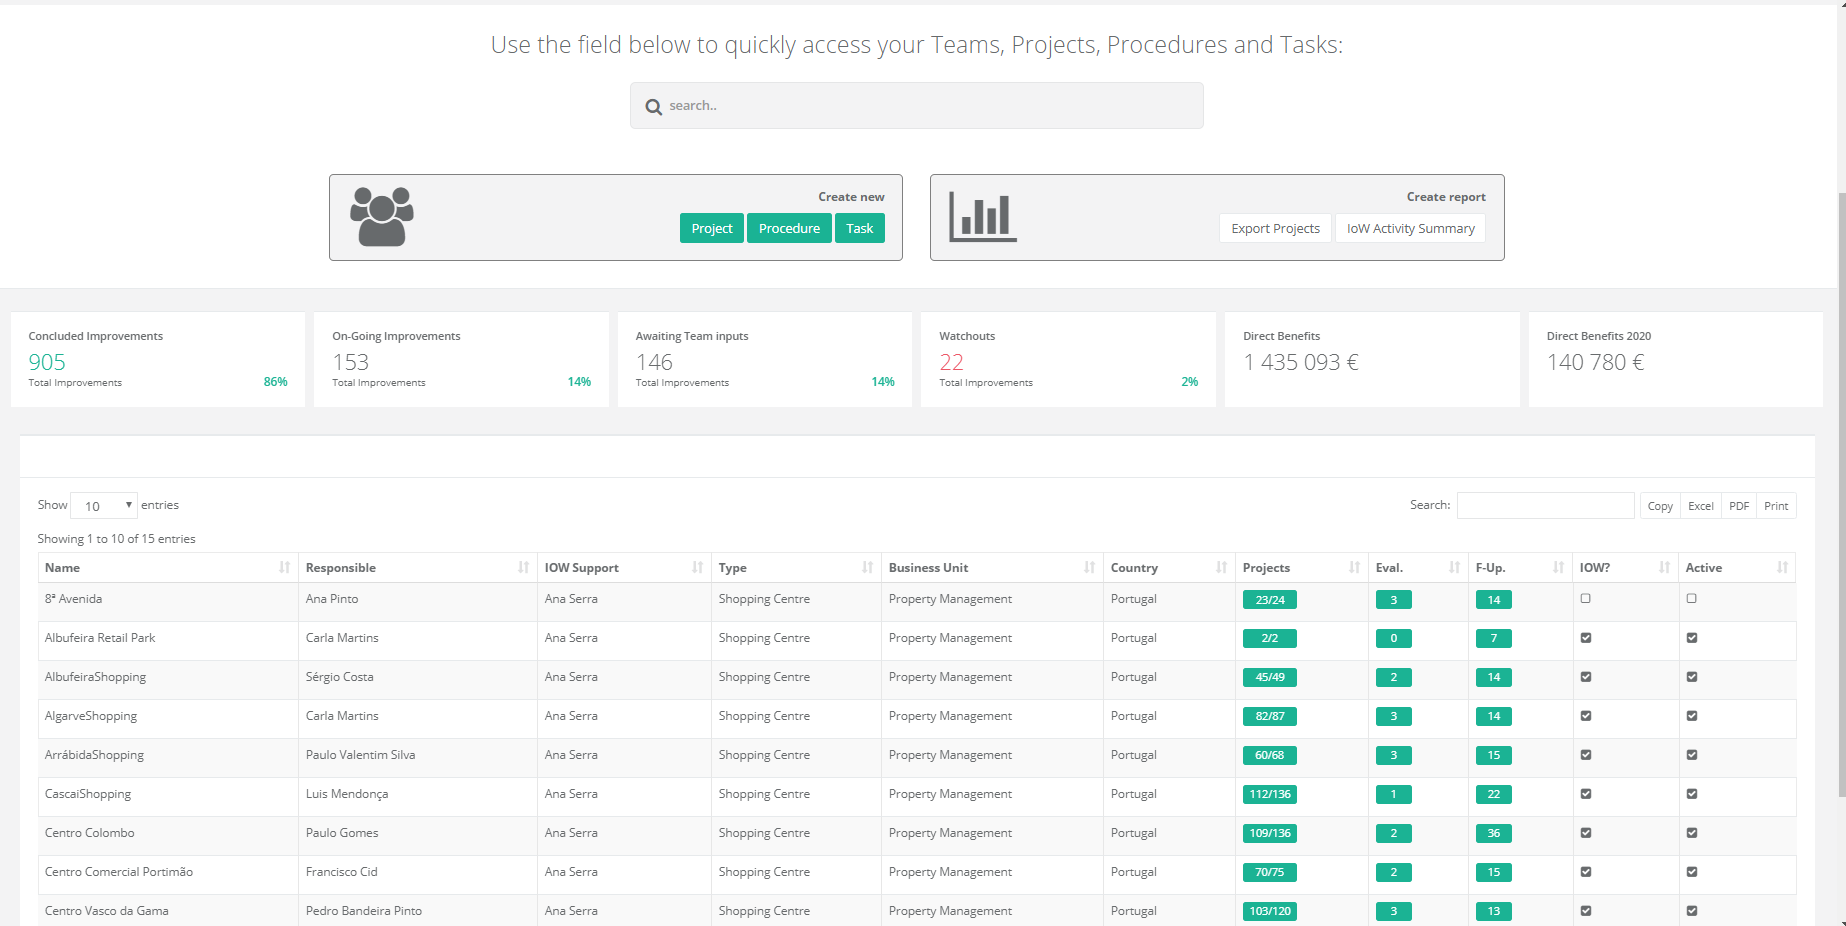 Improve Our Work portal showing financial benefits of lean projects